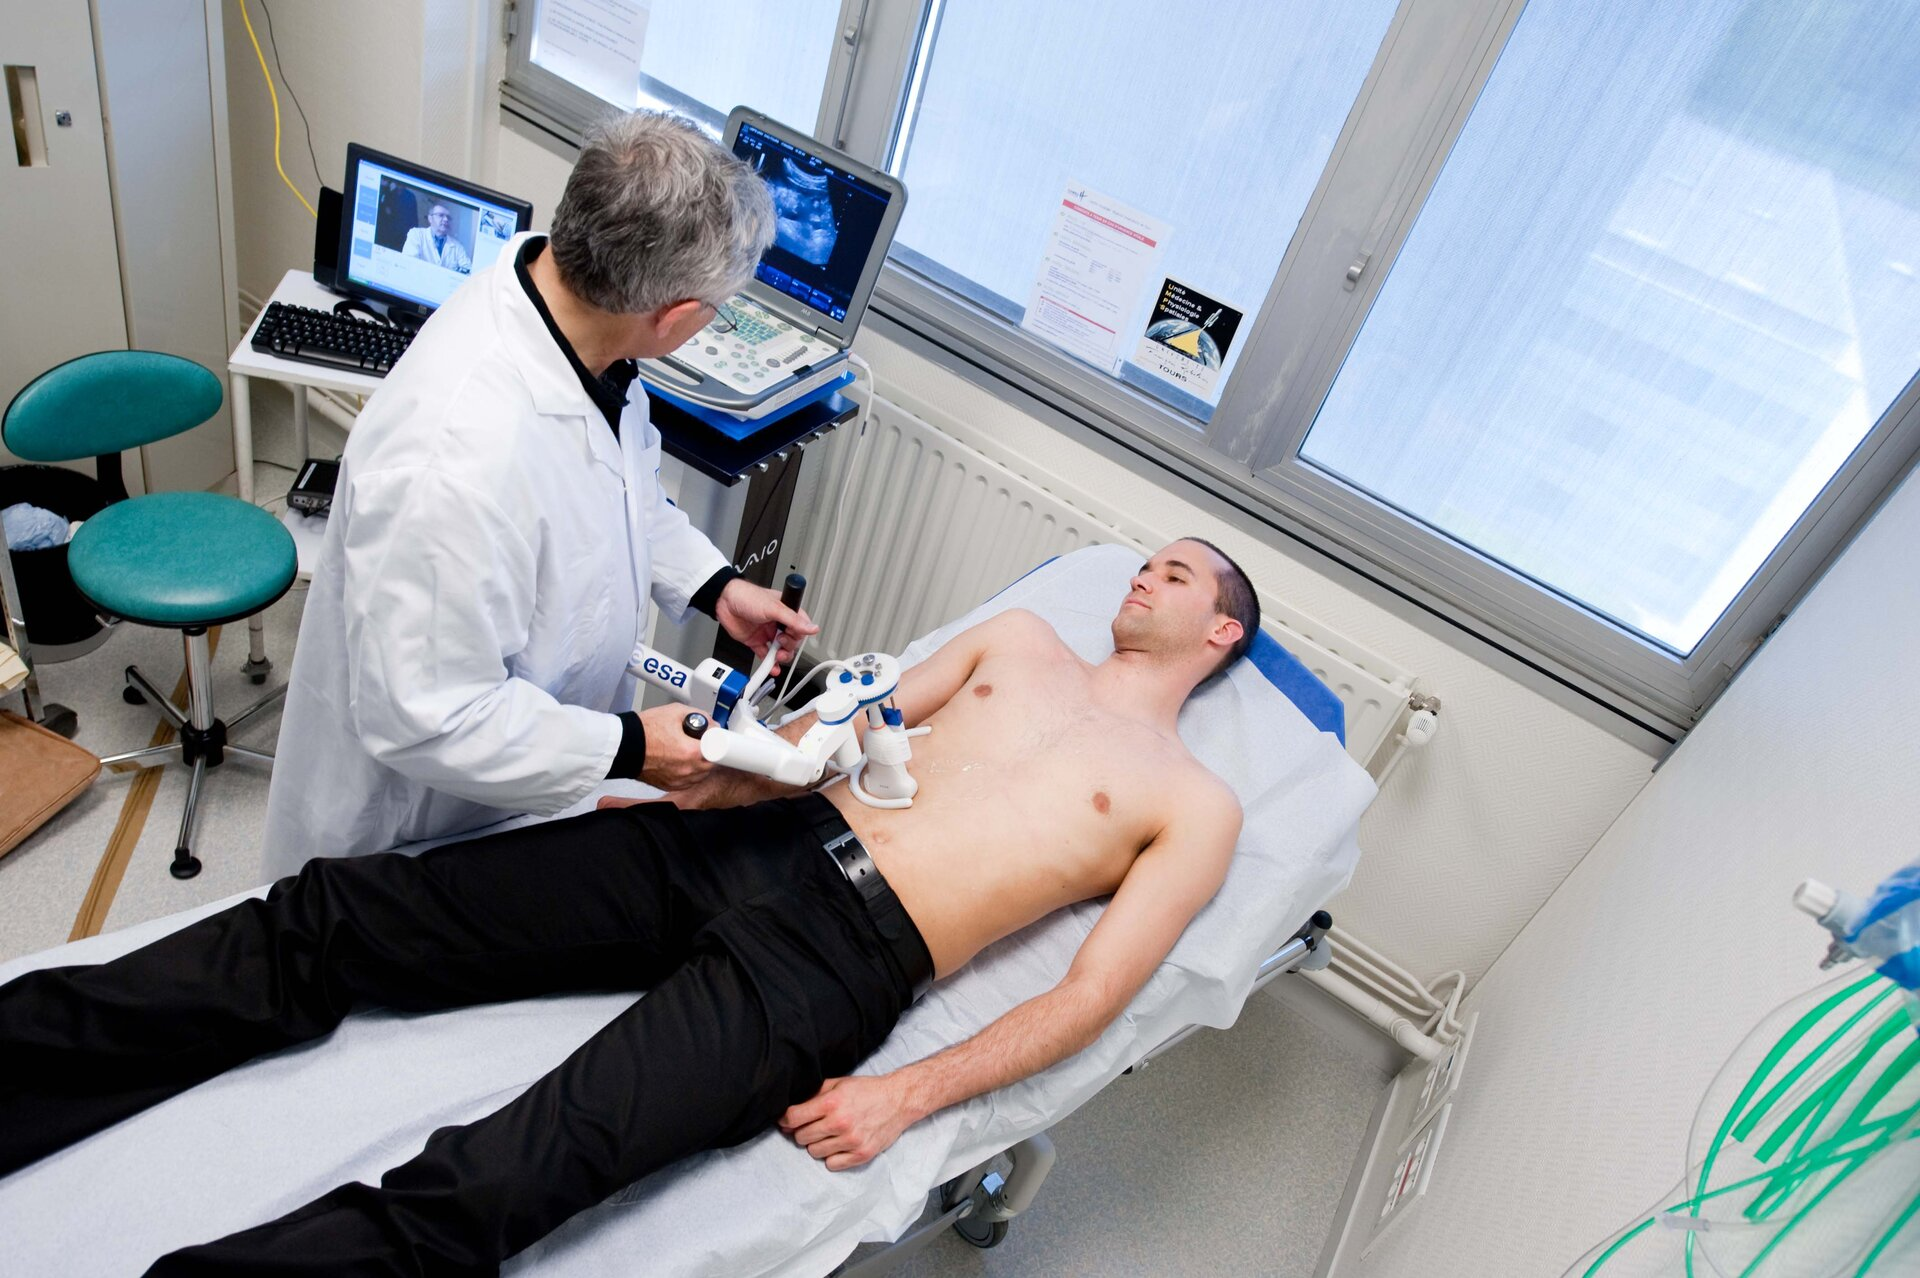 Remote-controlled ARTIS ultrasound device used on a patient